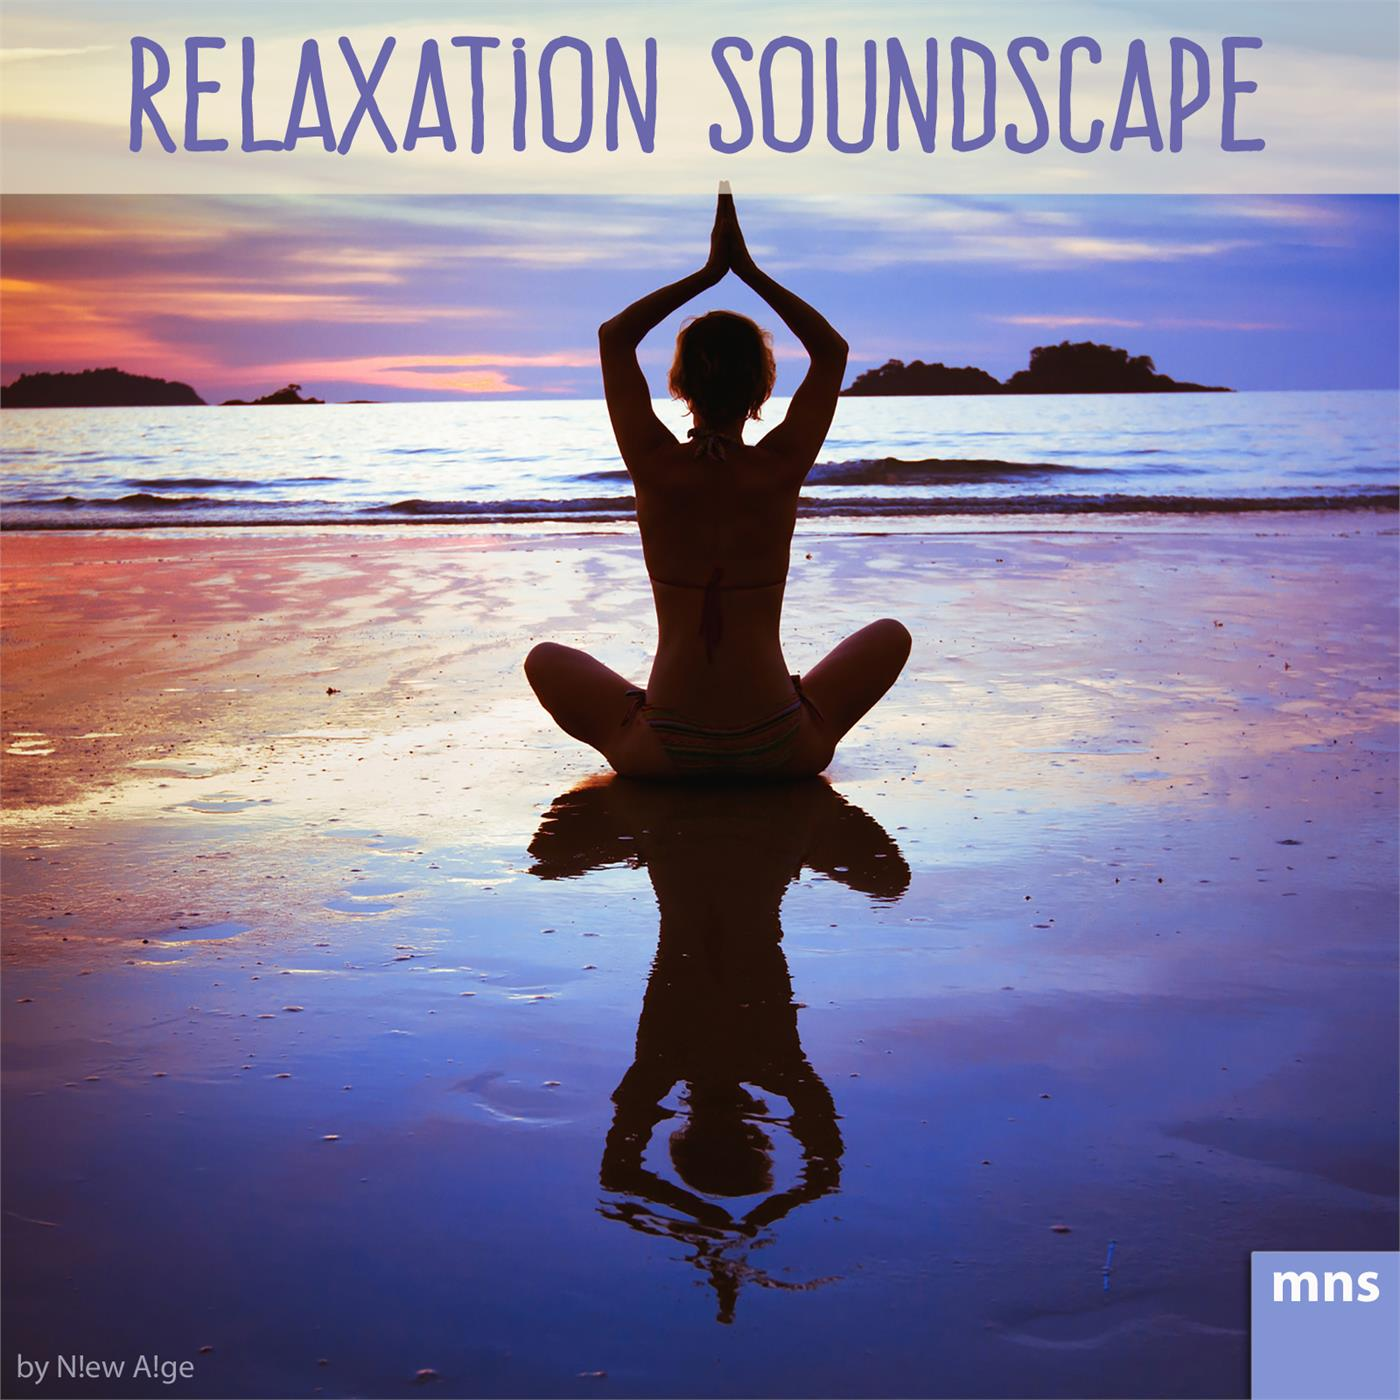 Relaxation Soundscape